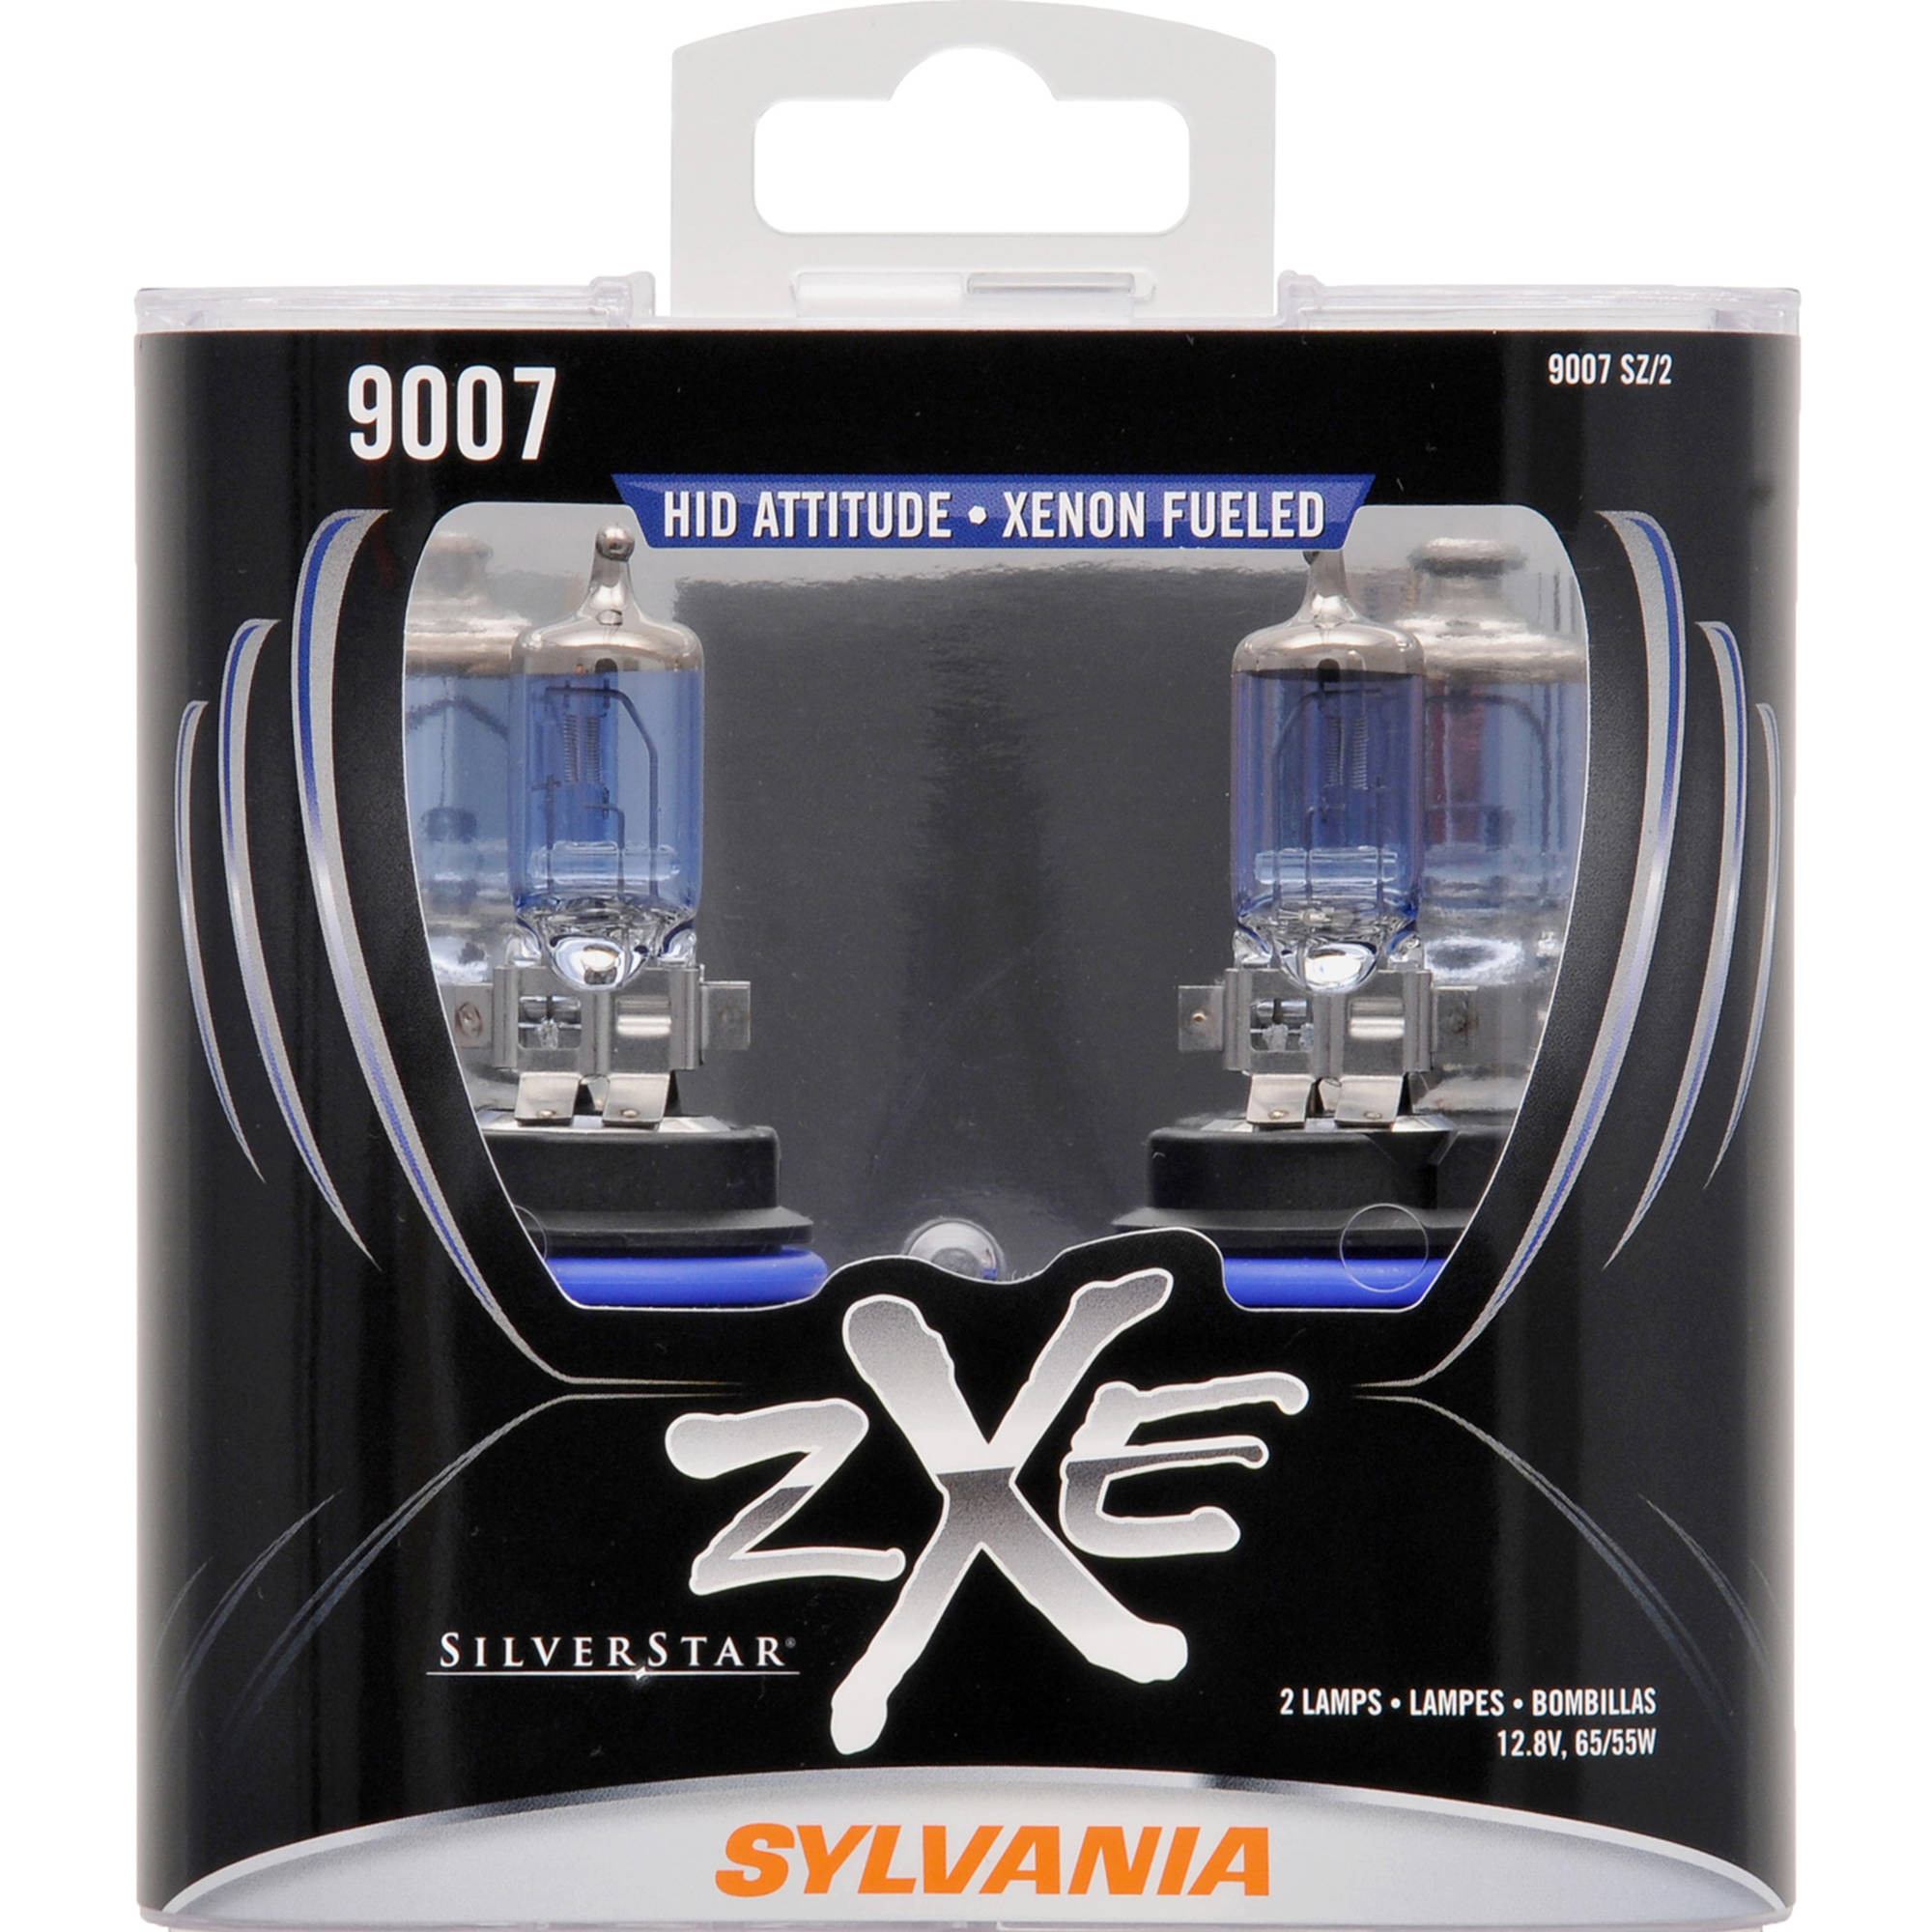 Sylvania 9007 SilverStar zXe Headlight, Contains 2 Bulbs